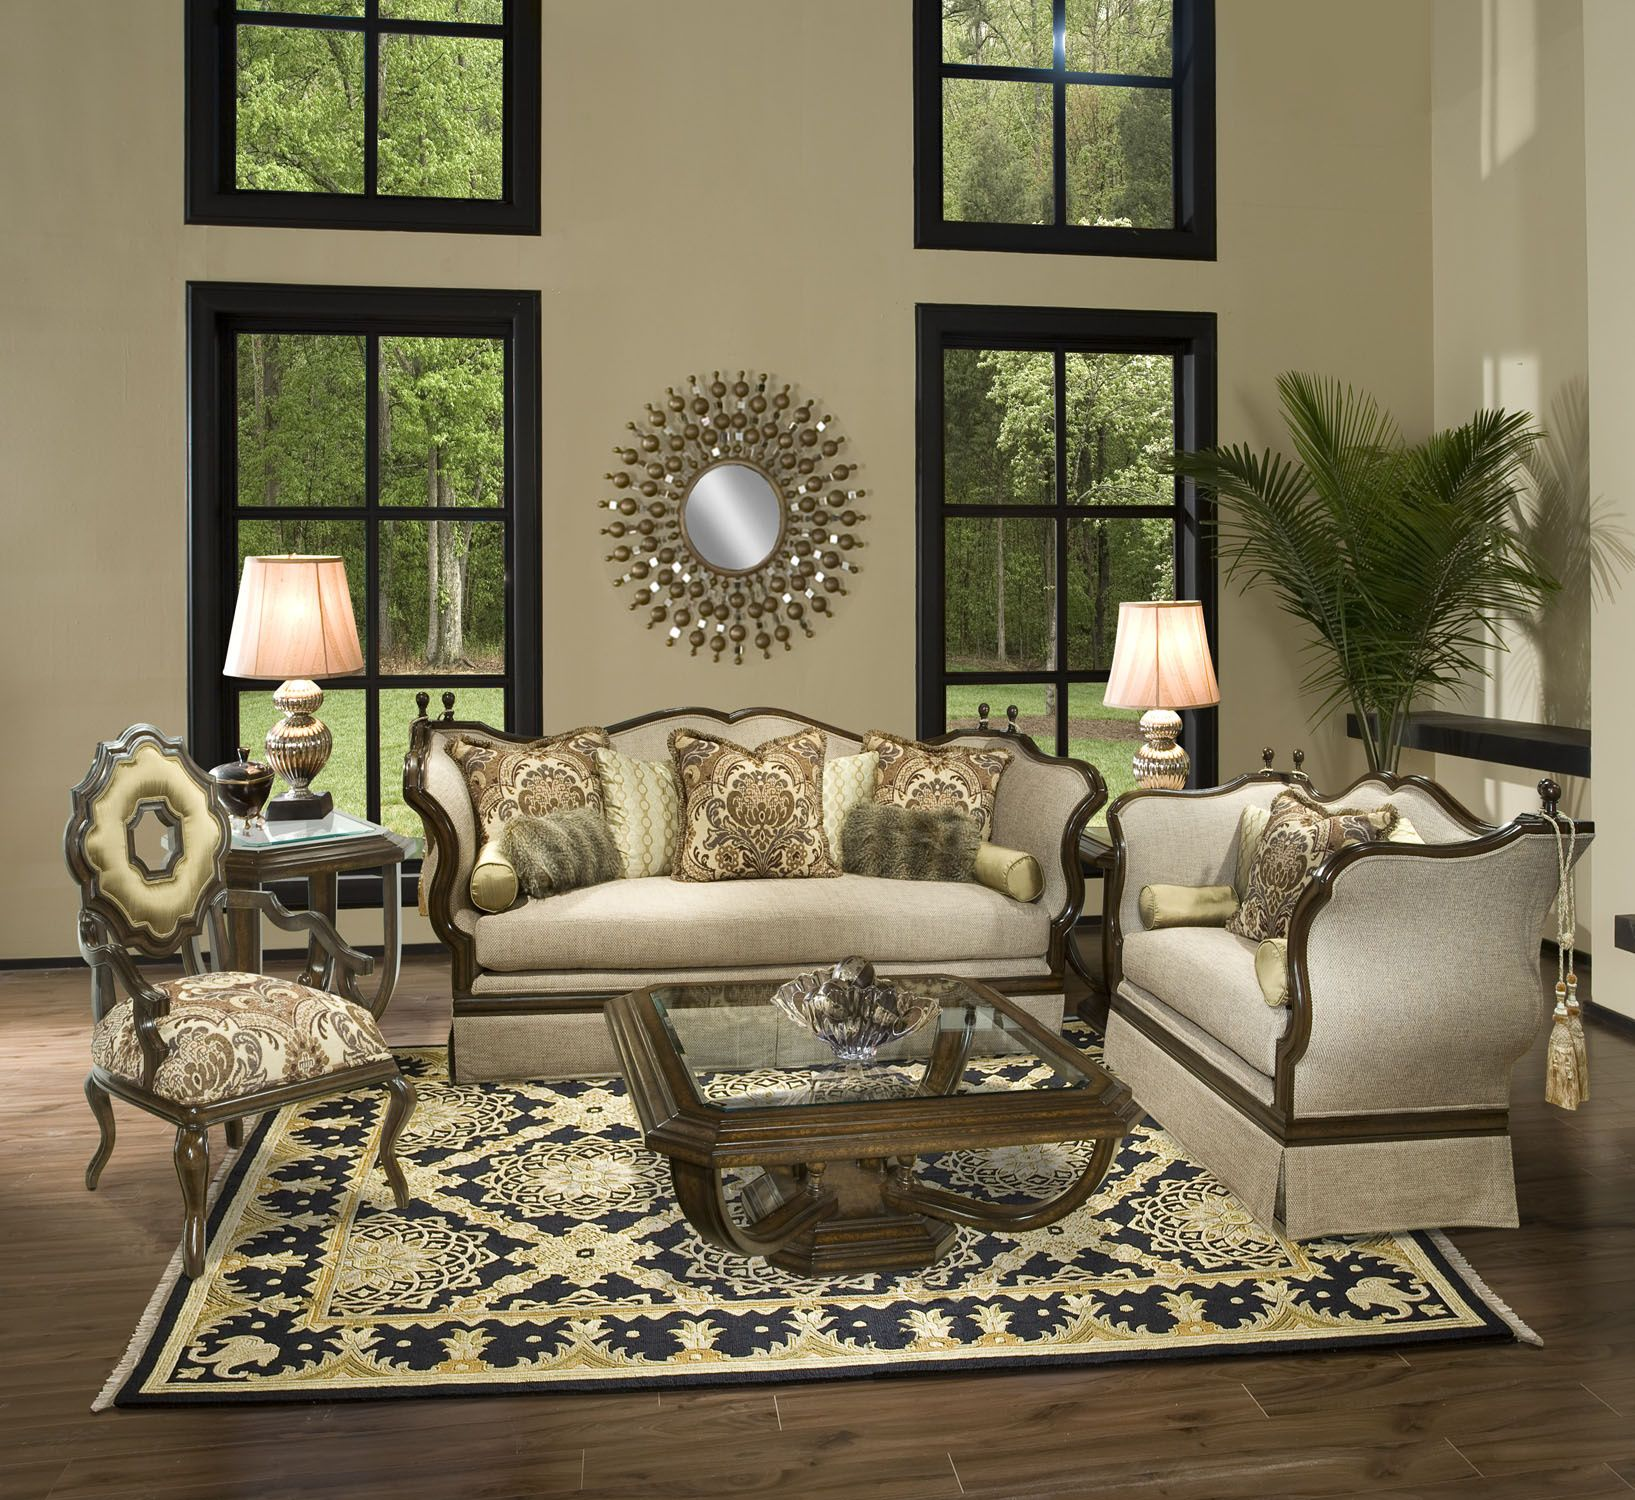 Genial What Are Good Furniture Stores   Americas Best Furniture Check More At  Http://